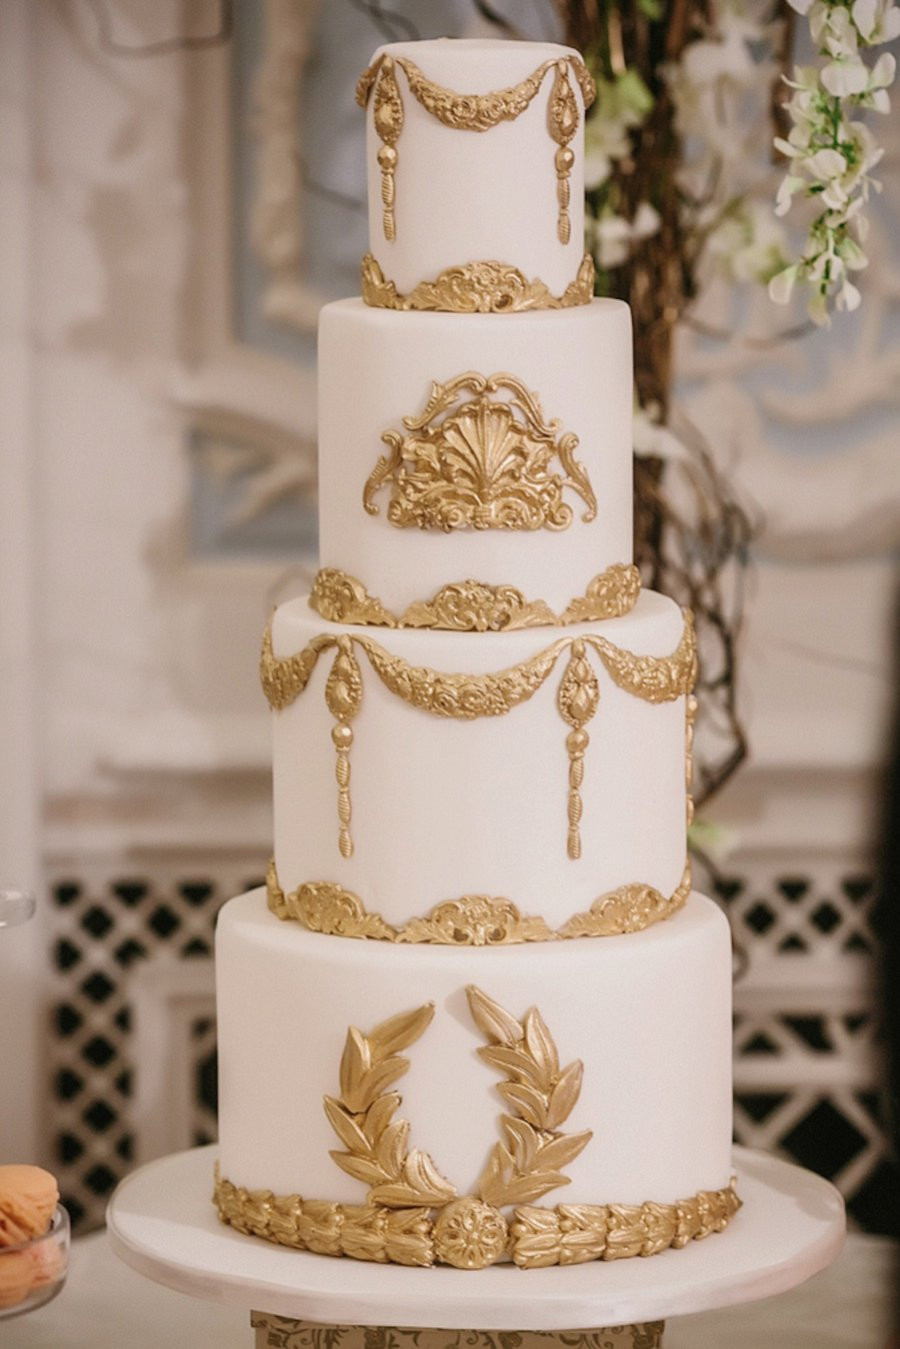 White And Gold Wedding Cake  Top 10 Wedding Cake Trends for 2016